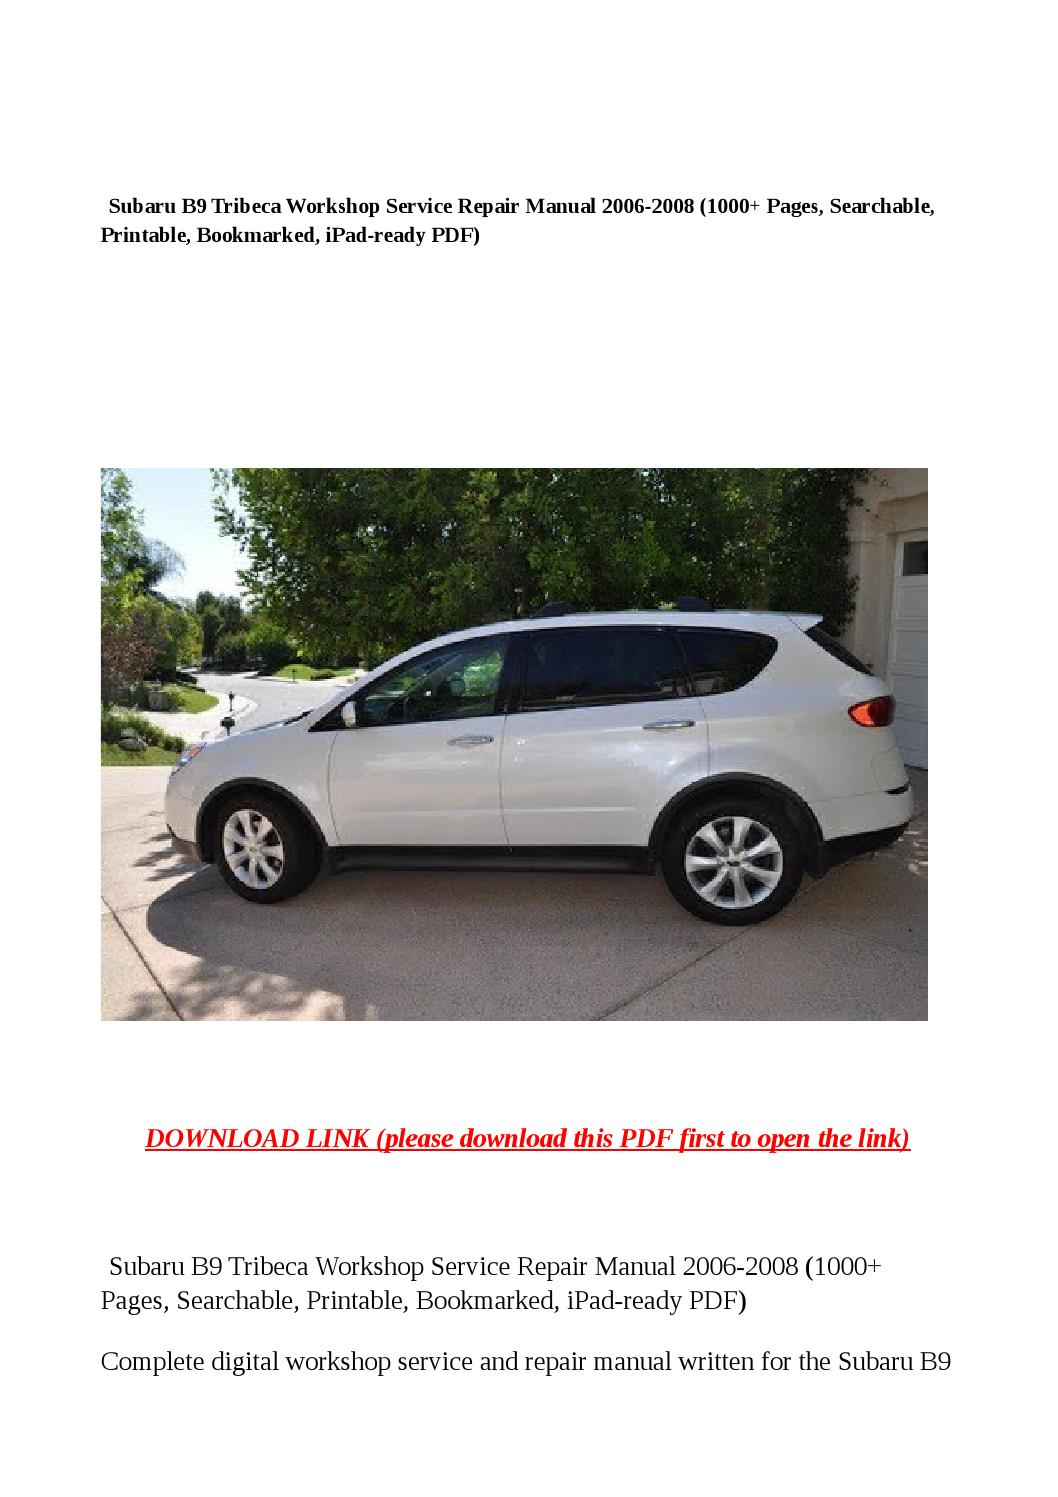 2006 subaru b9 tribeca owner's manual download